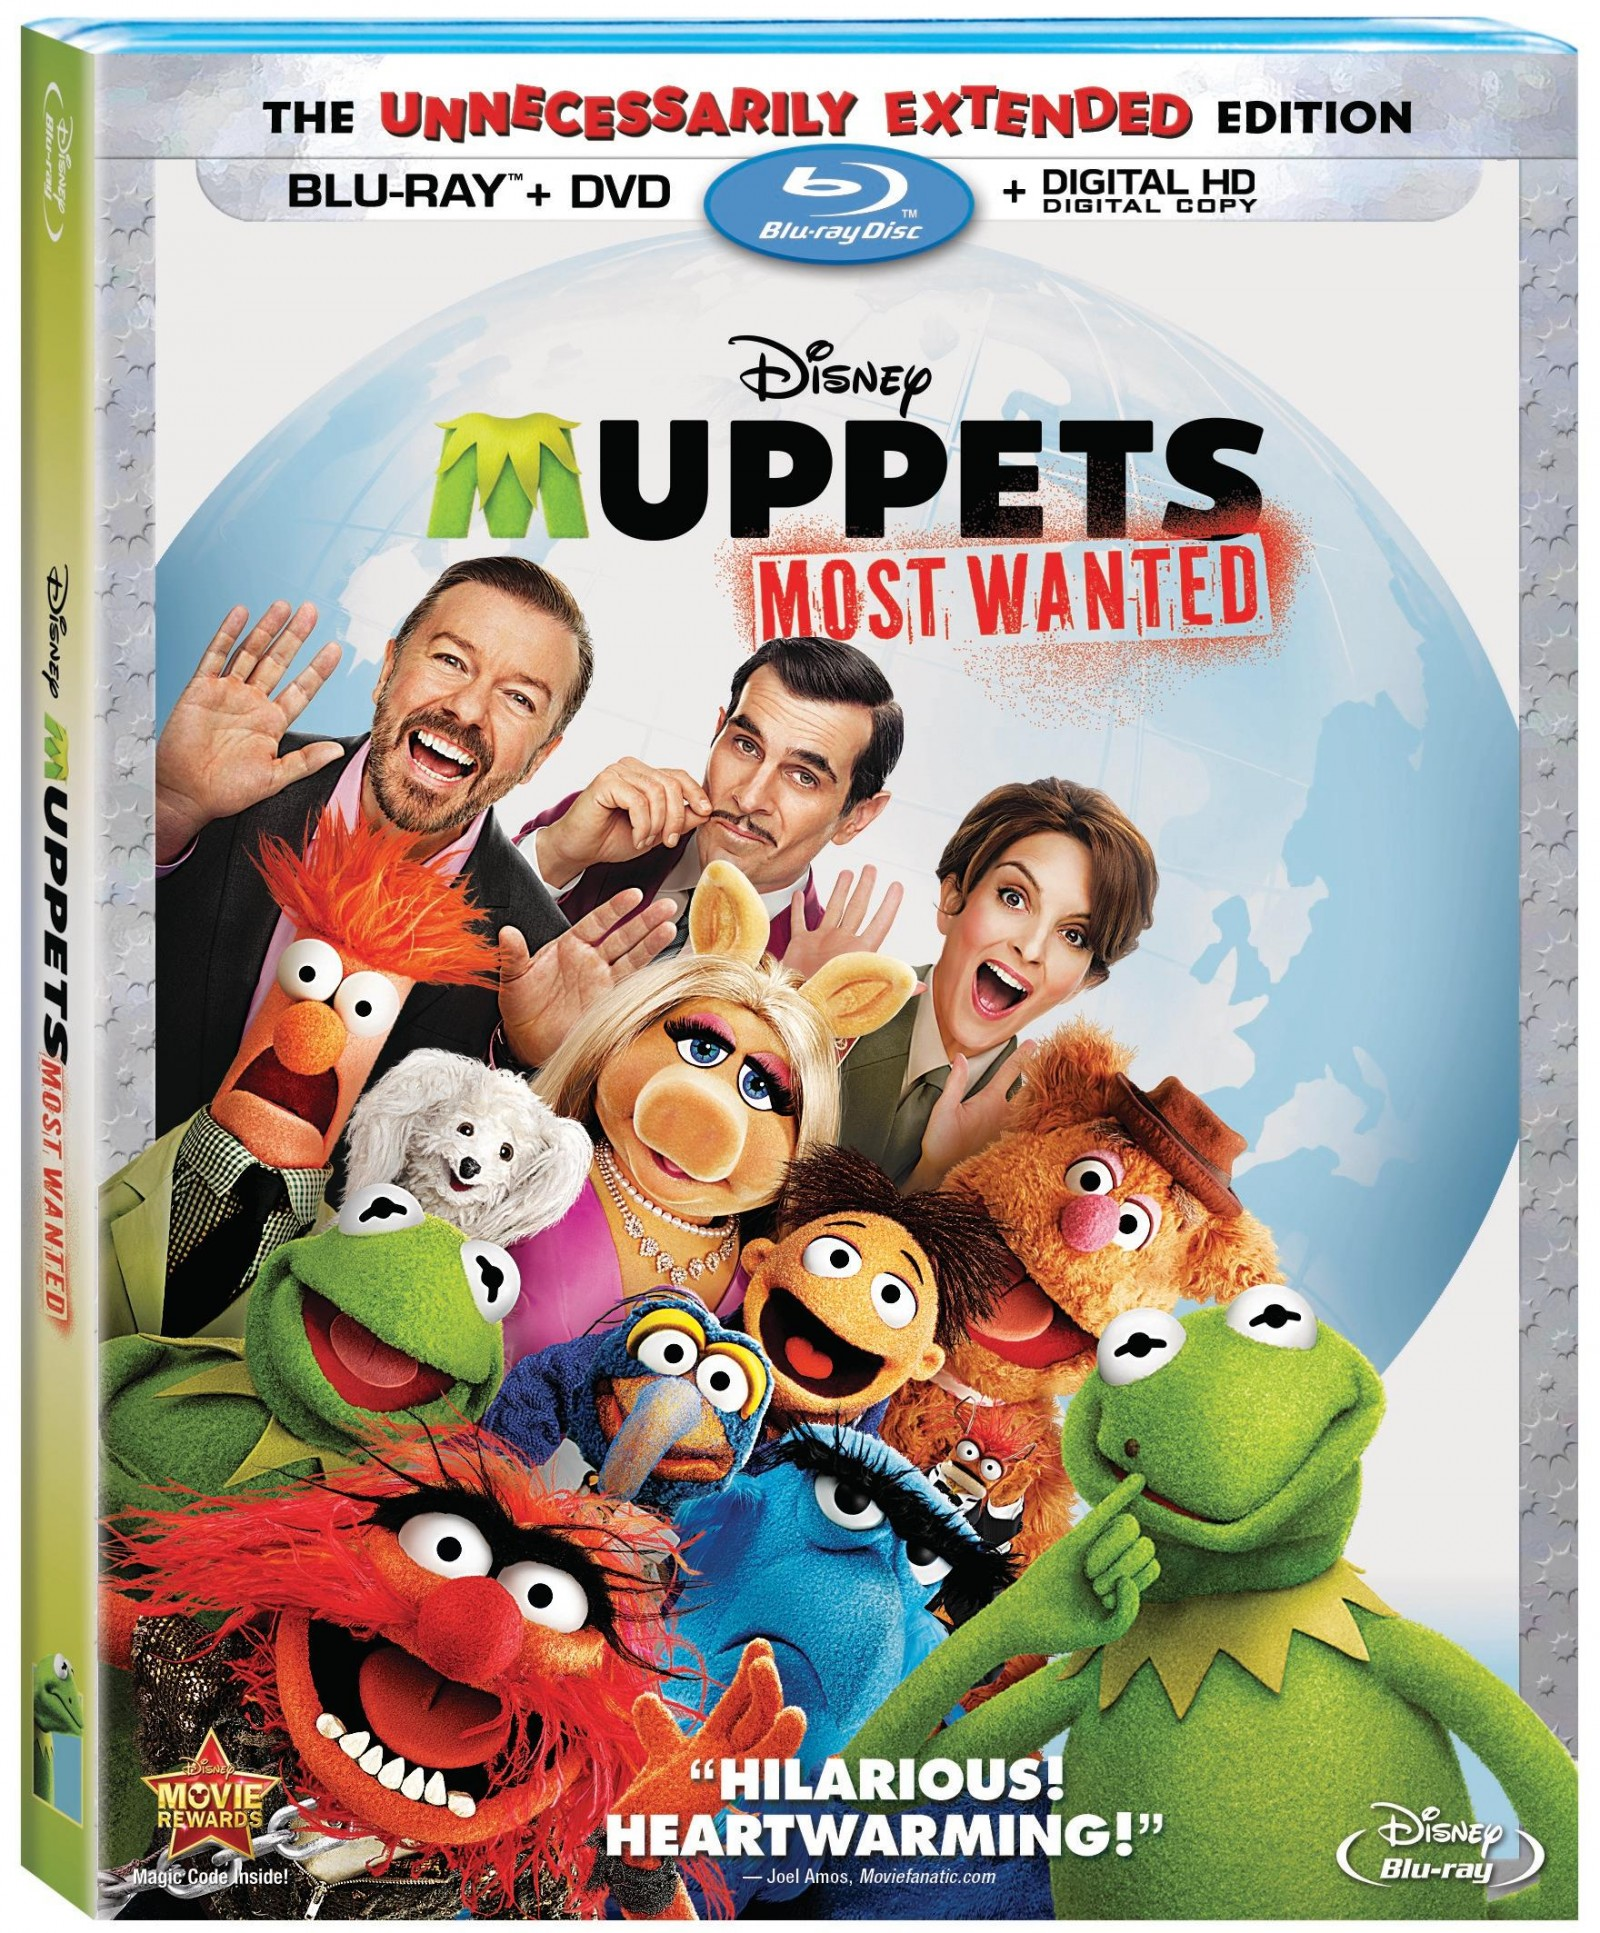 Disney's Muppets Most Wanted on Bly-ray, DVD & Disney Movies Anywhere August 12th